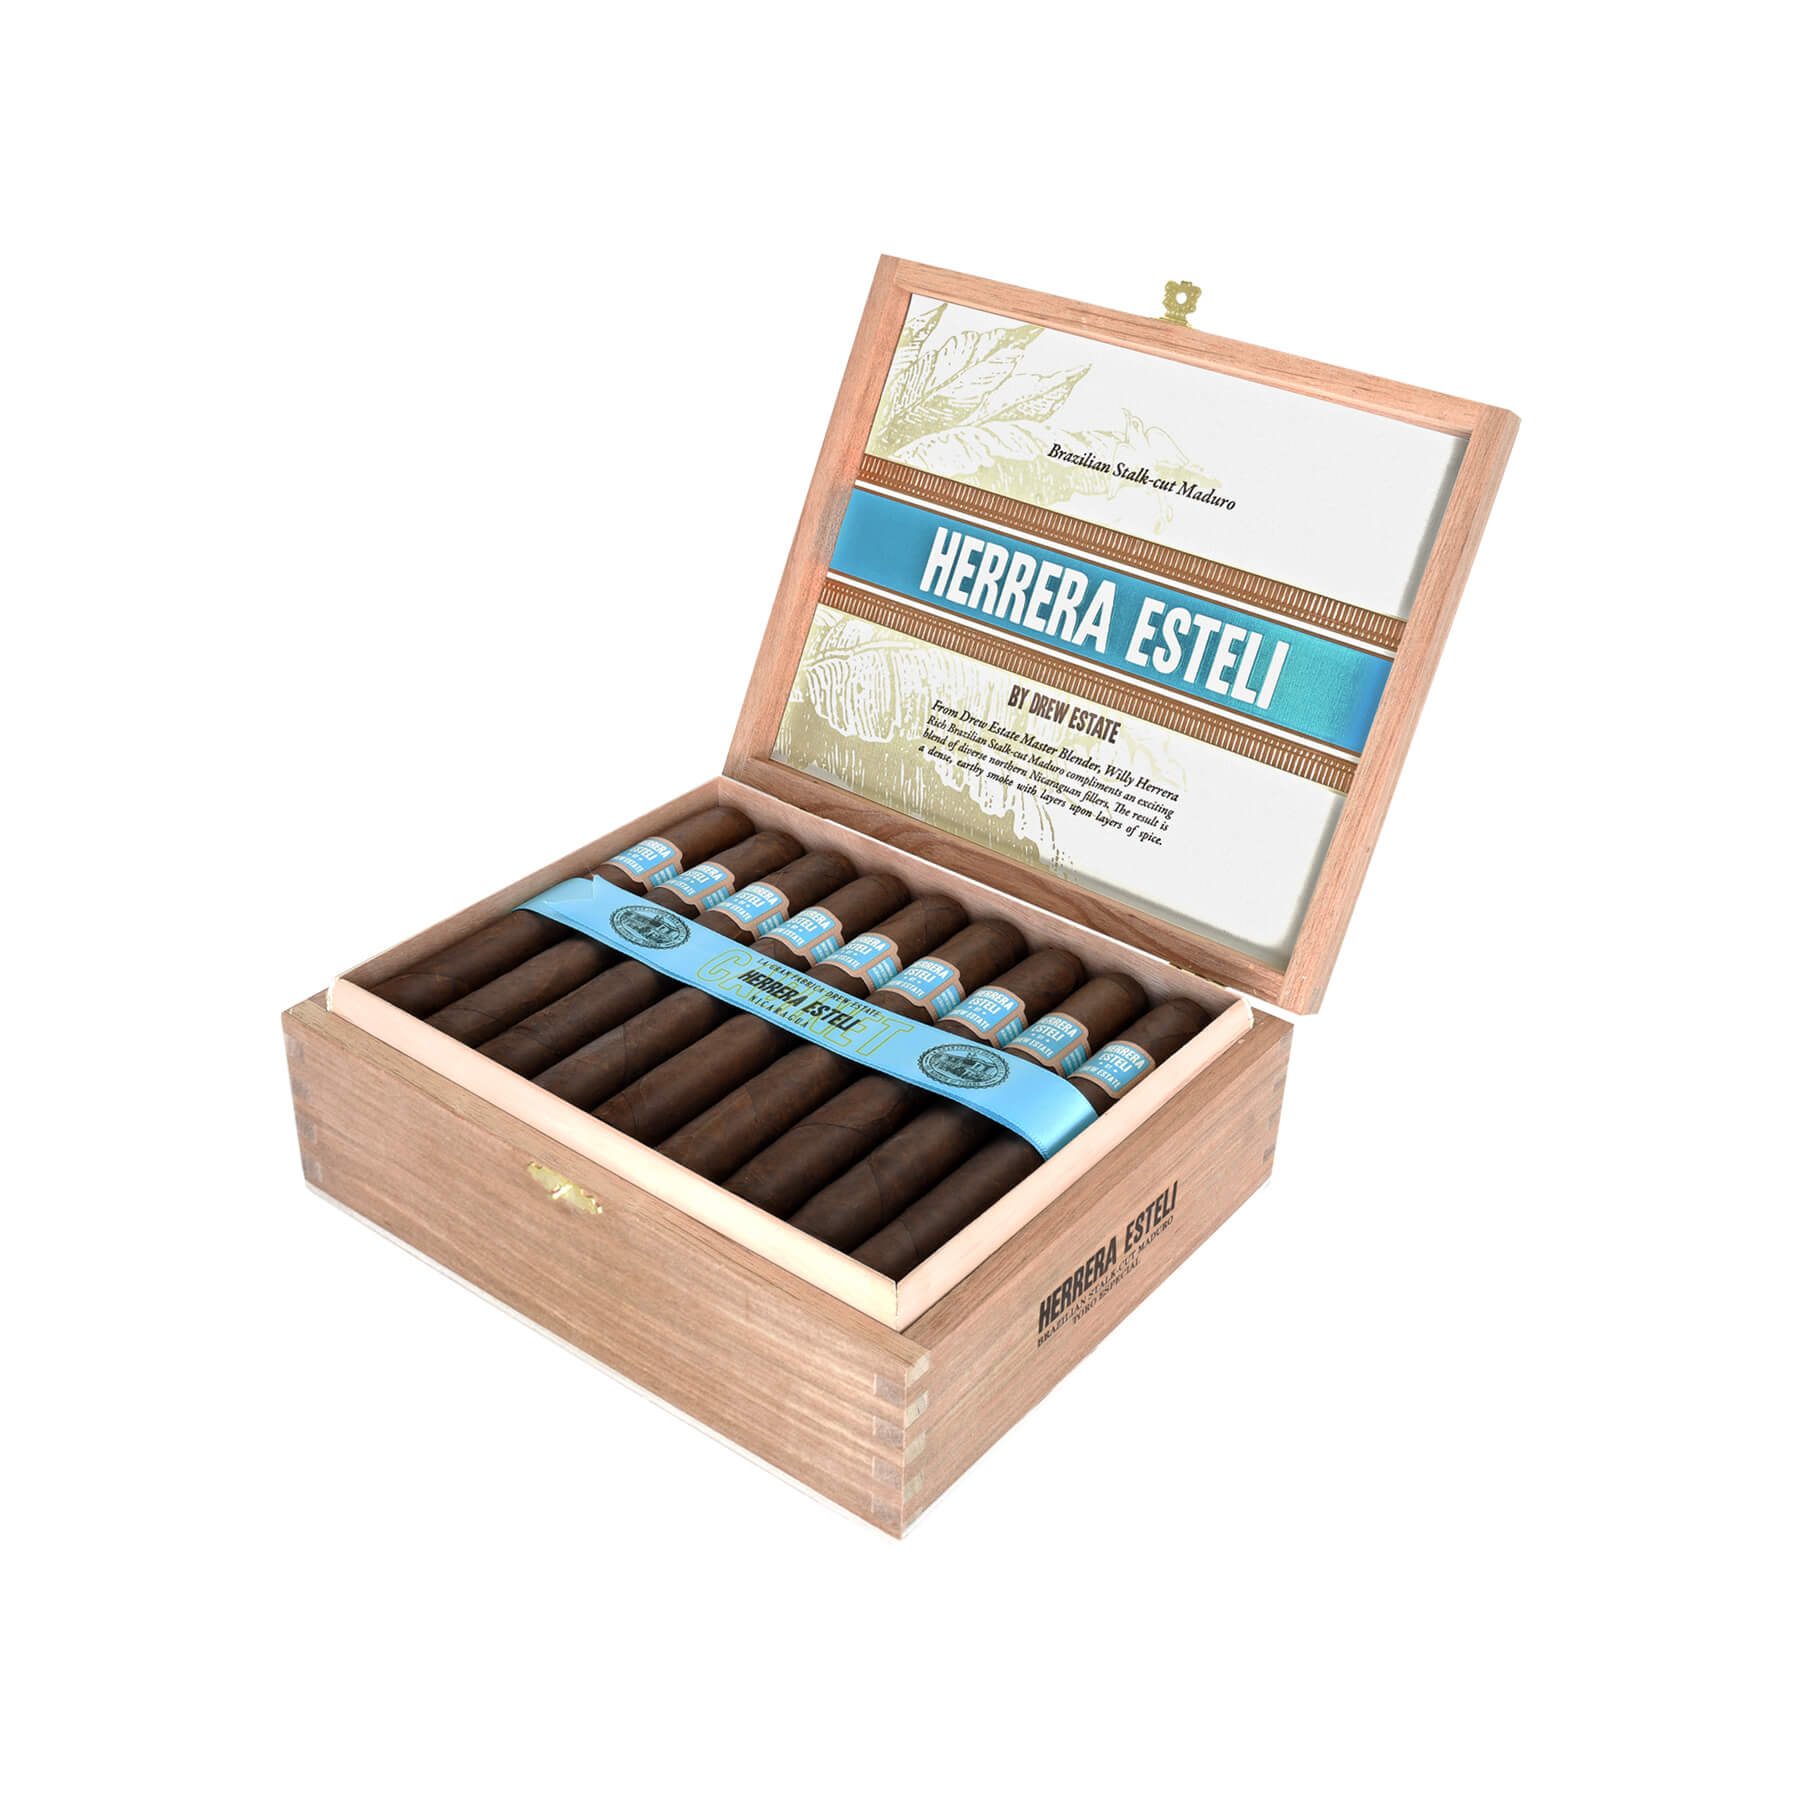 Herrera_Esteli_Brazilian_Maduro_New_Open_Box1_6x6